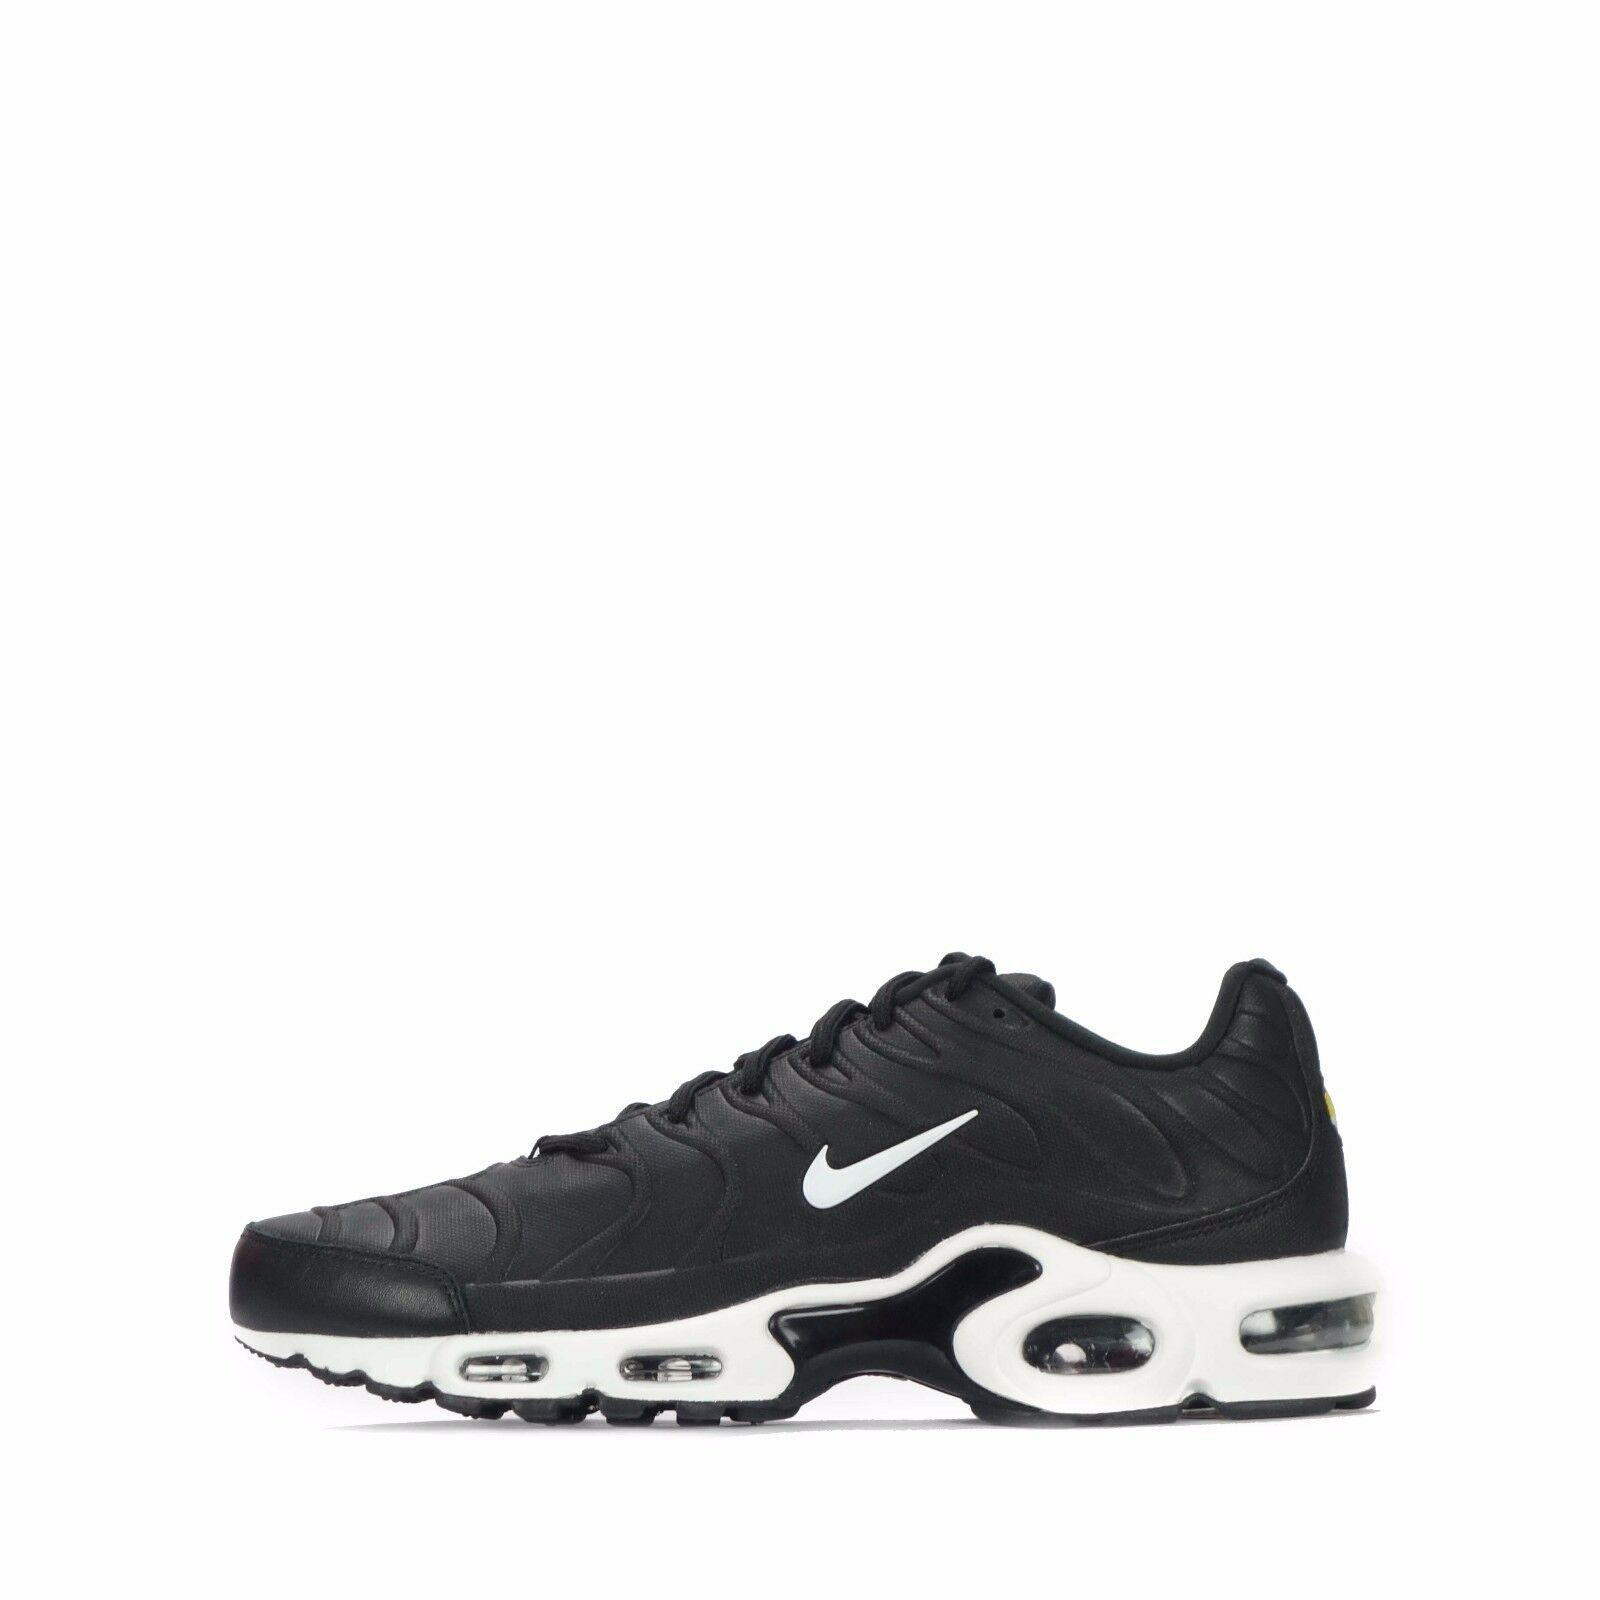 Nike Air Max Plus VT TN1 Tuned Mens Shoes in Black/White The most popular shoes for men and women